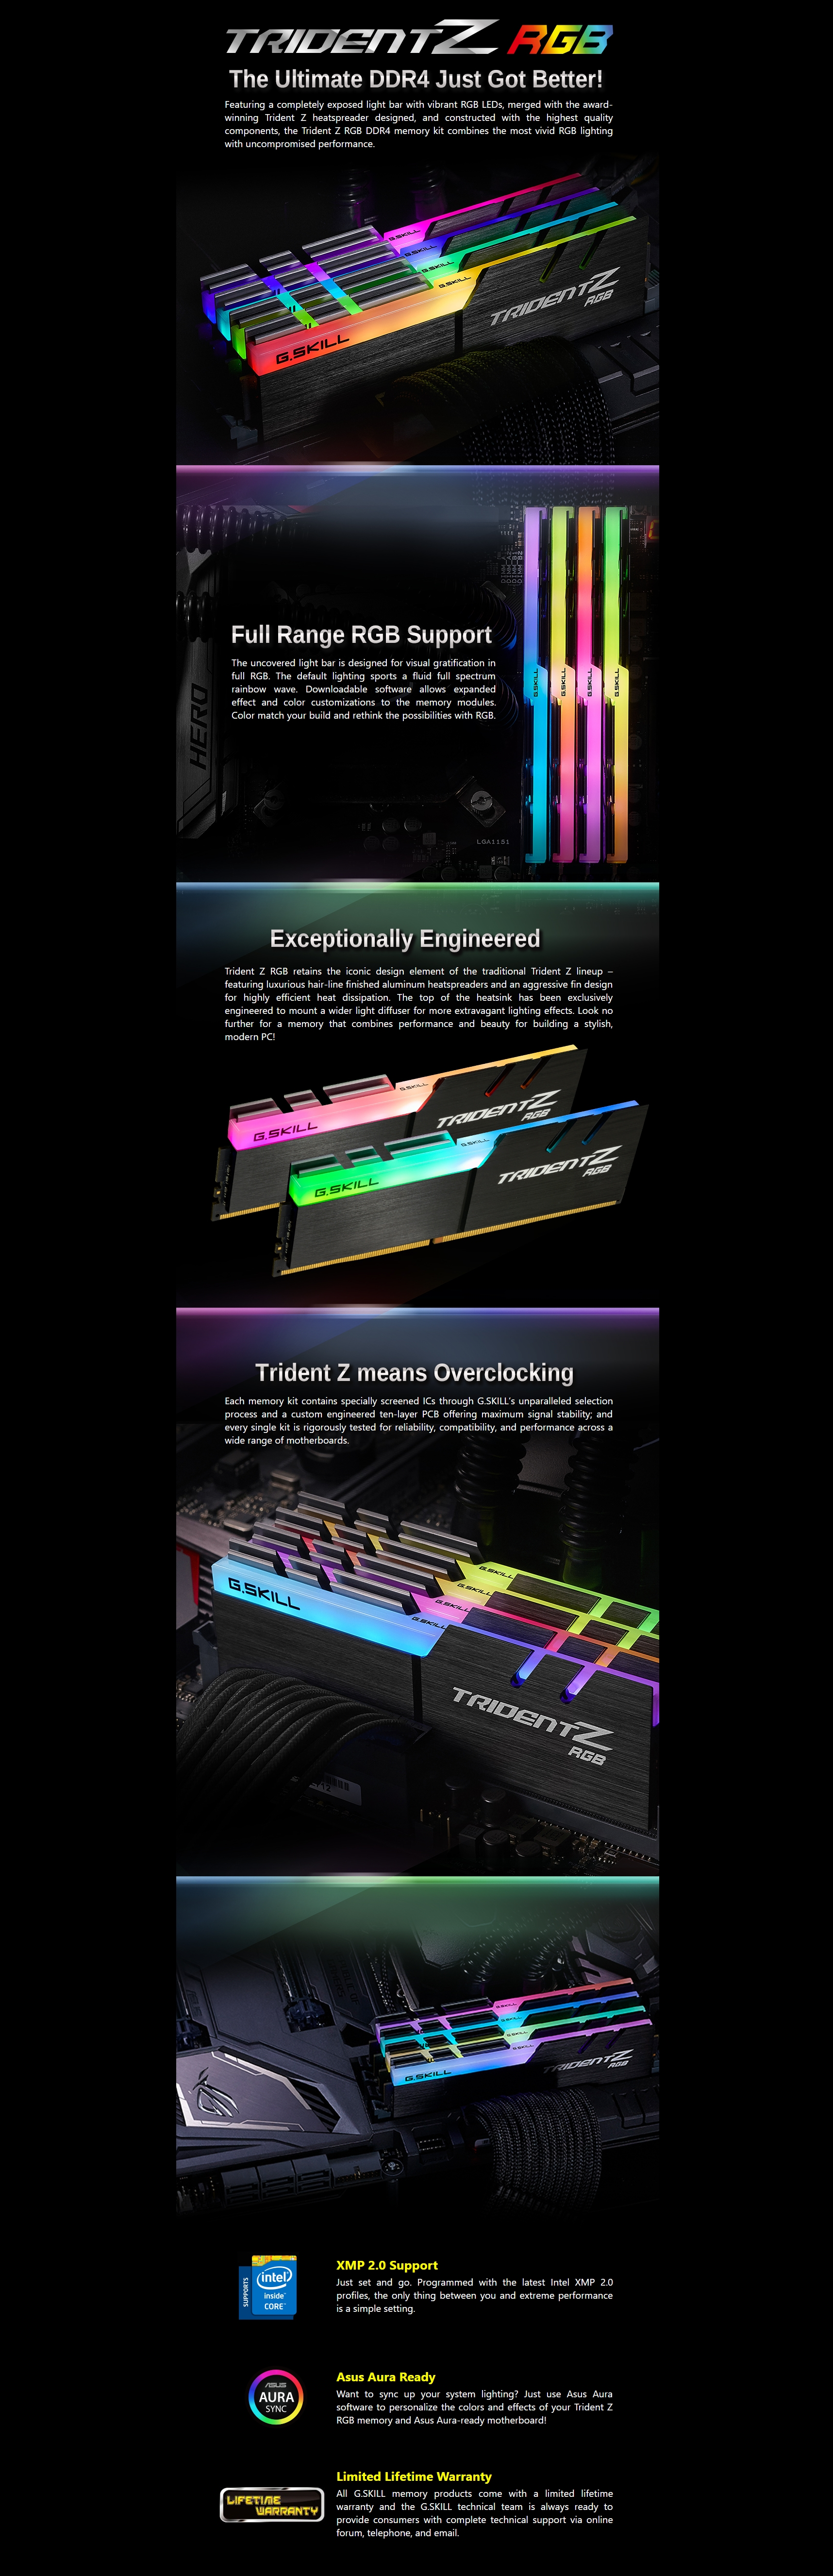 A large marketing image providing additional information about the product G.Skill 16GB Kit (2x8GB) DDR4 Trident Z RGB 2400MHz C15 - Additional alt info not provided